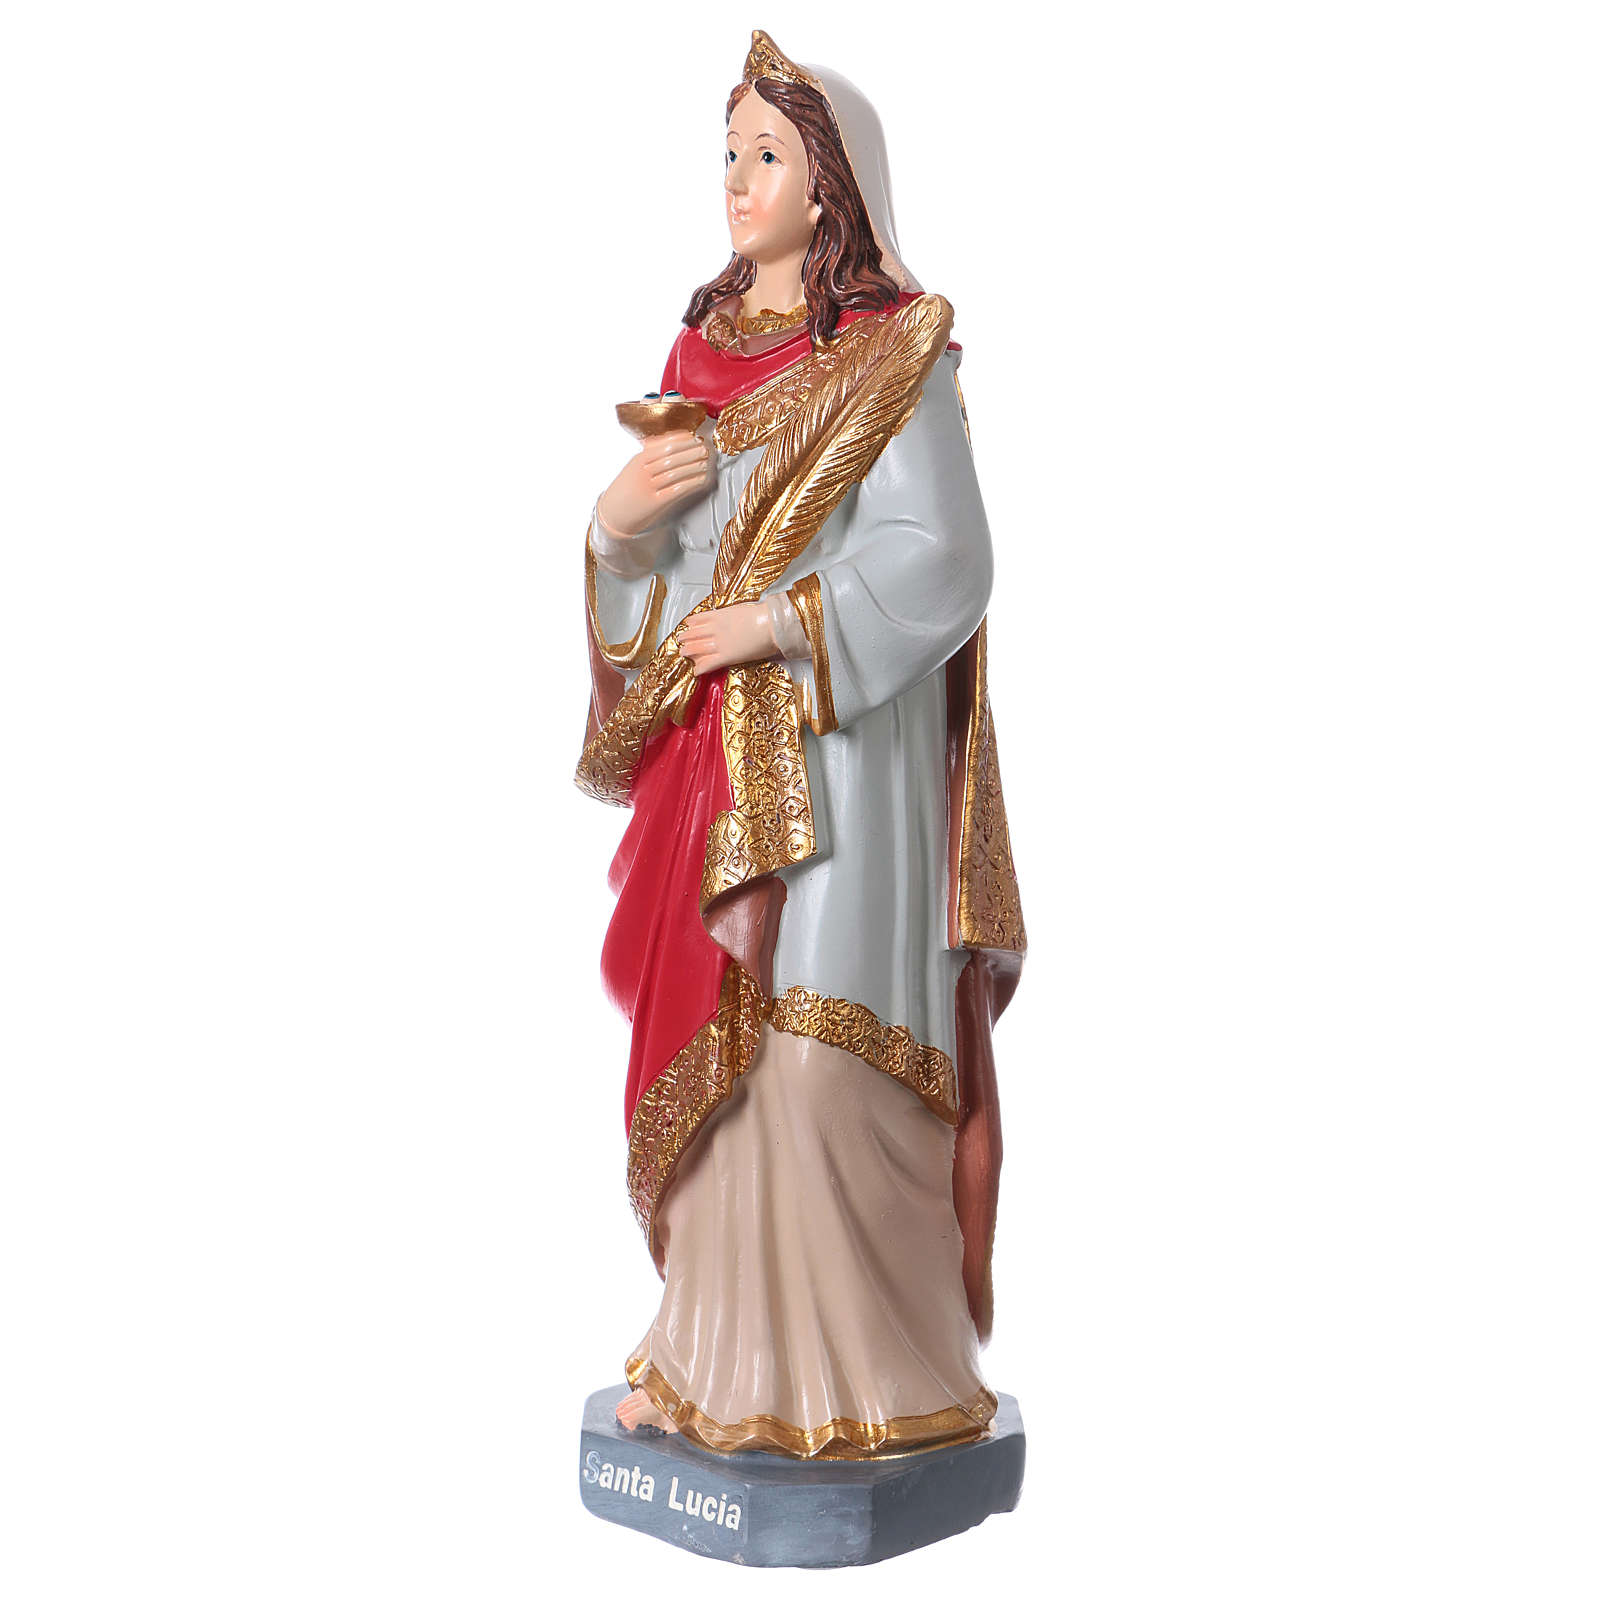 St. Lucia 20 cm Resin Statue 4